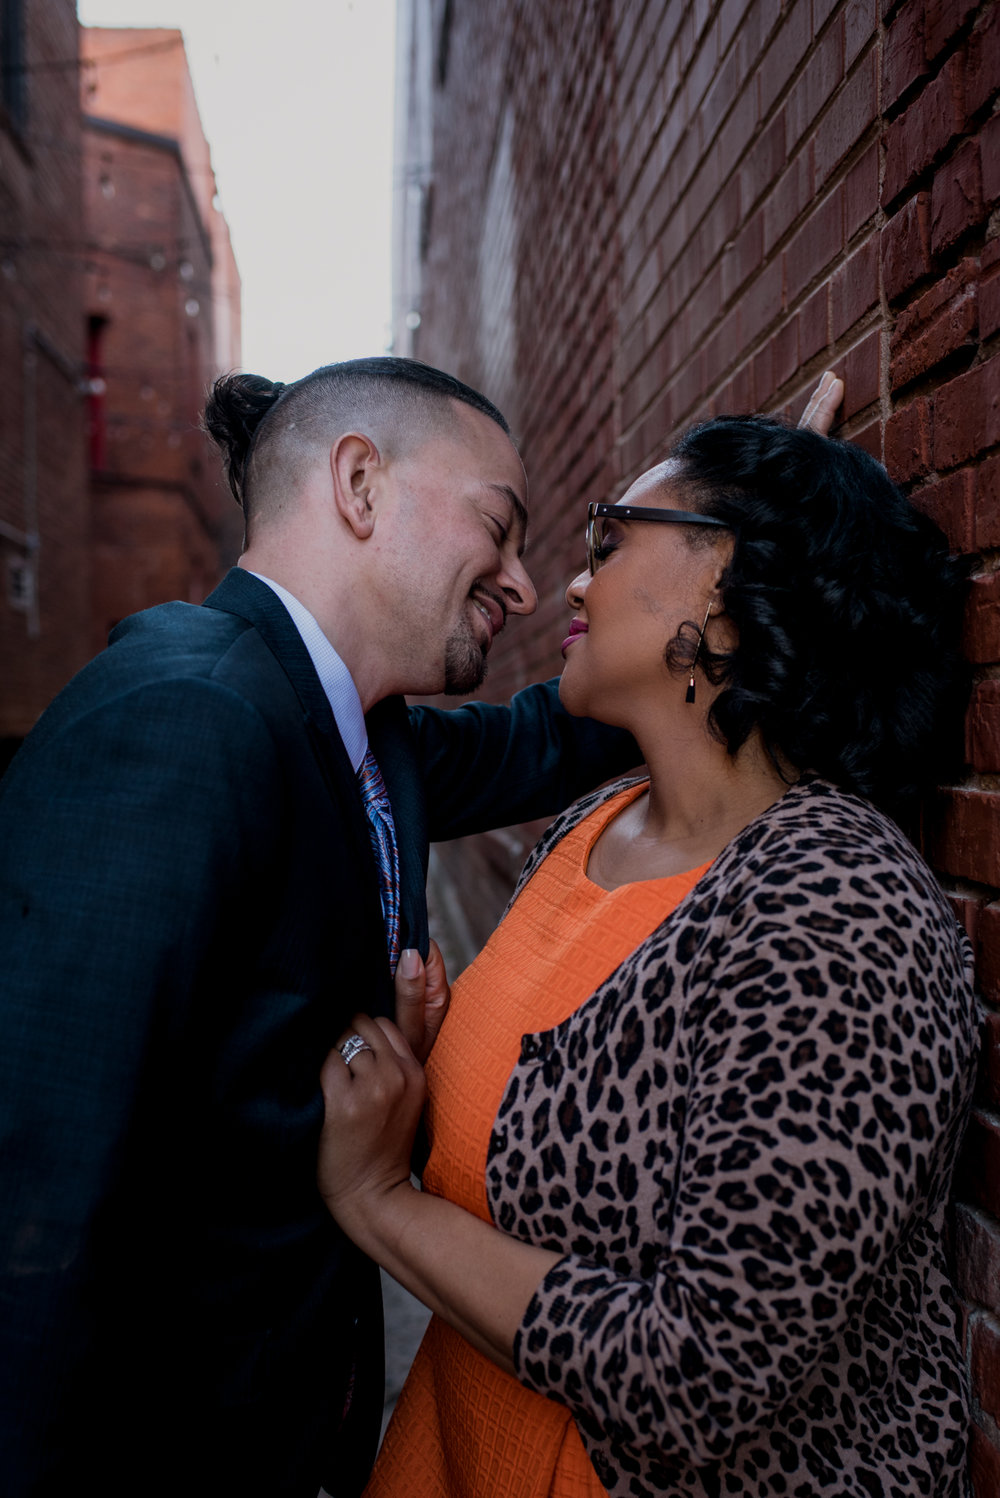 The husband and wife get really close in an alley way outside of The Durham Hotel in Durham, North Carolina, image by Rose Trail Images.